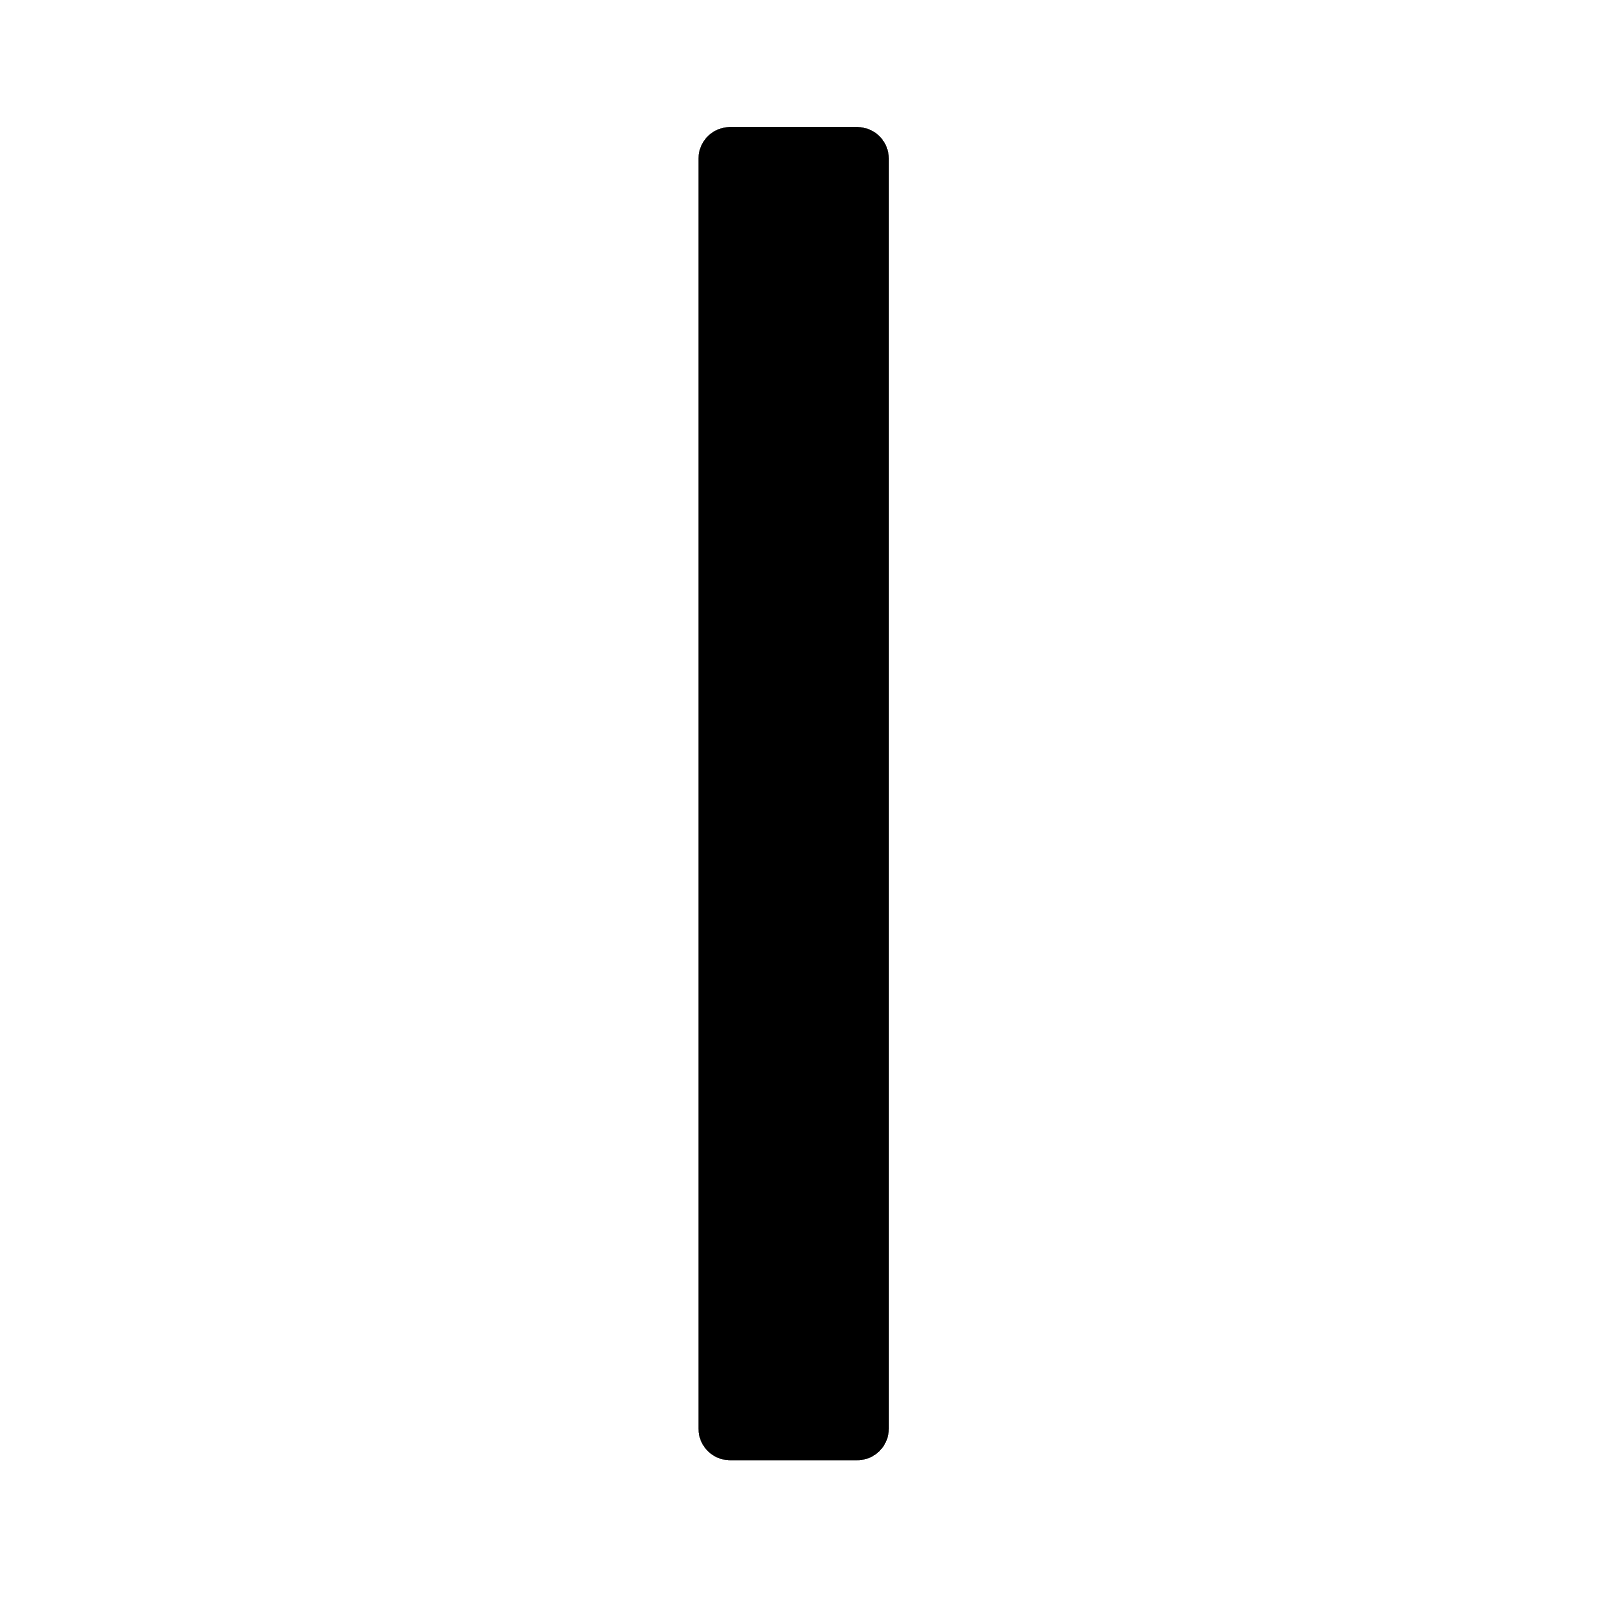 Vertical black line png. Thick filled icon